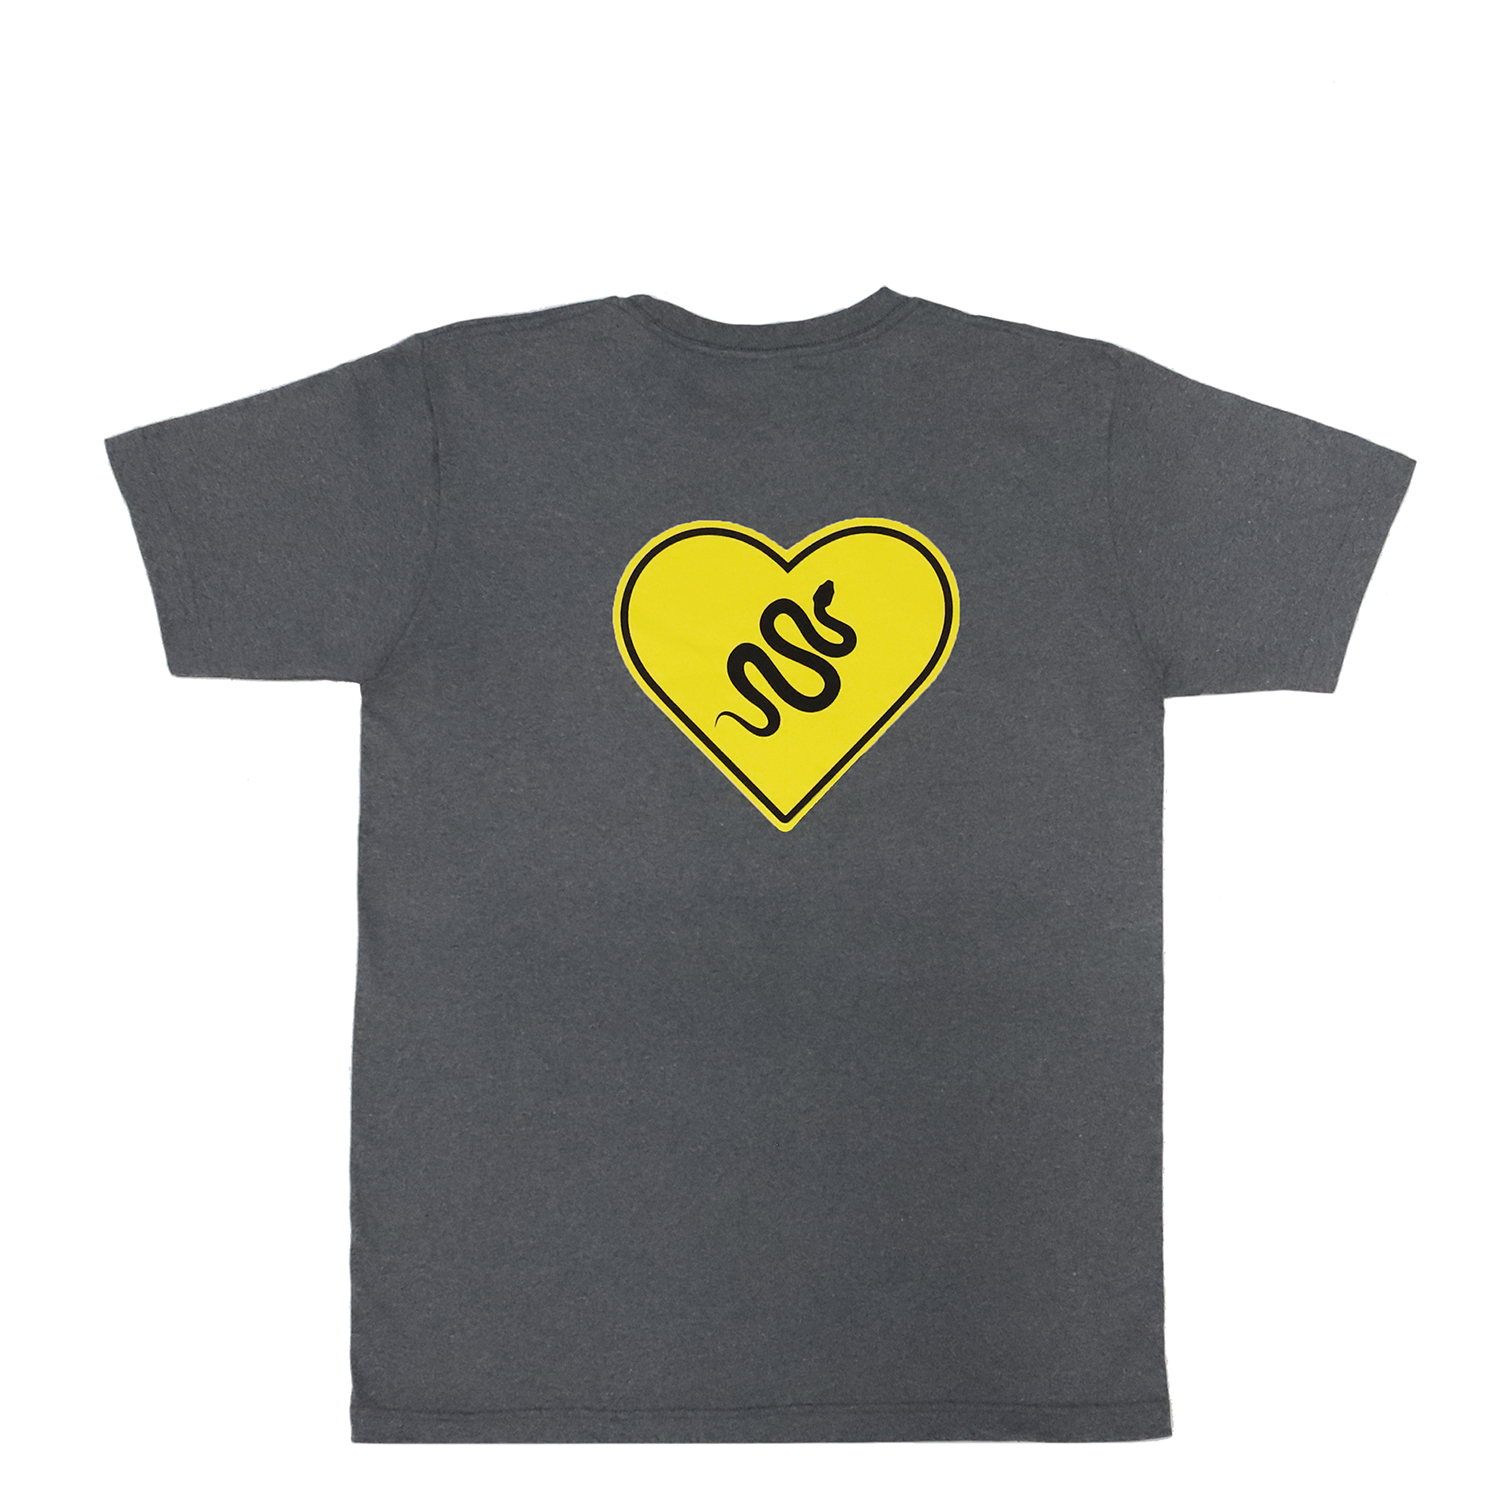 products/18-GREY-TEE-BACK-snake.png